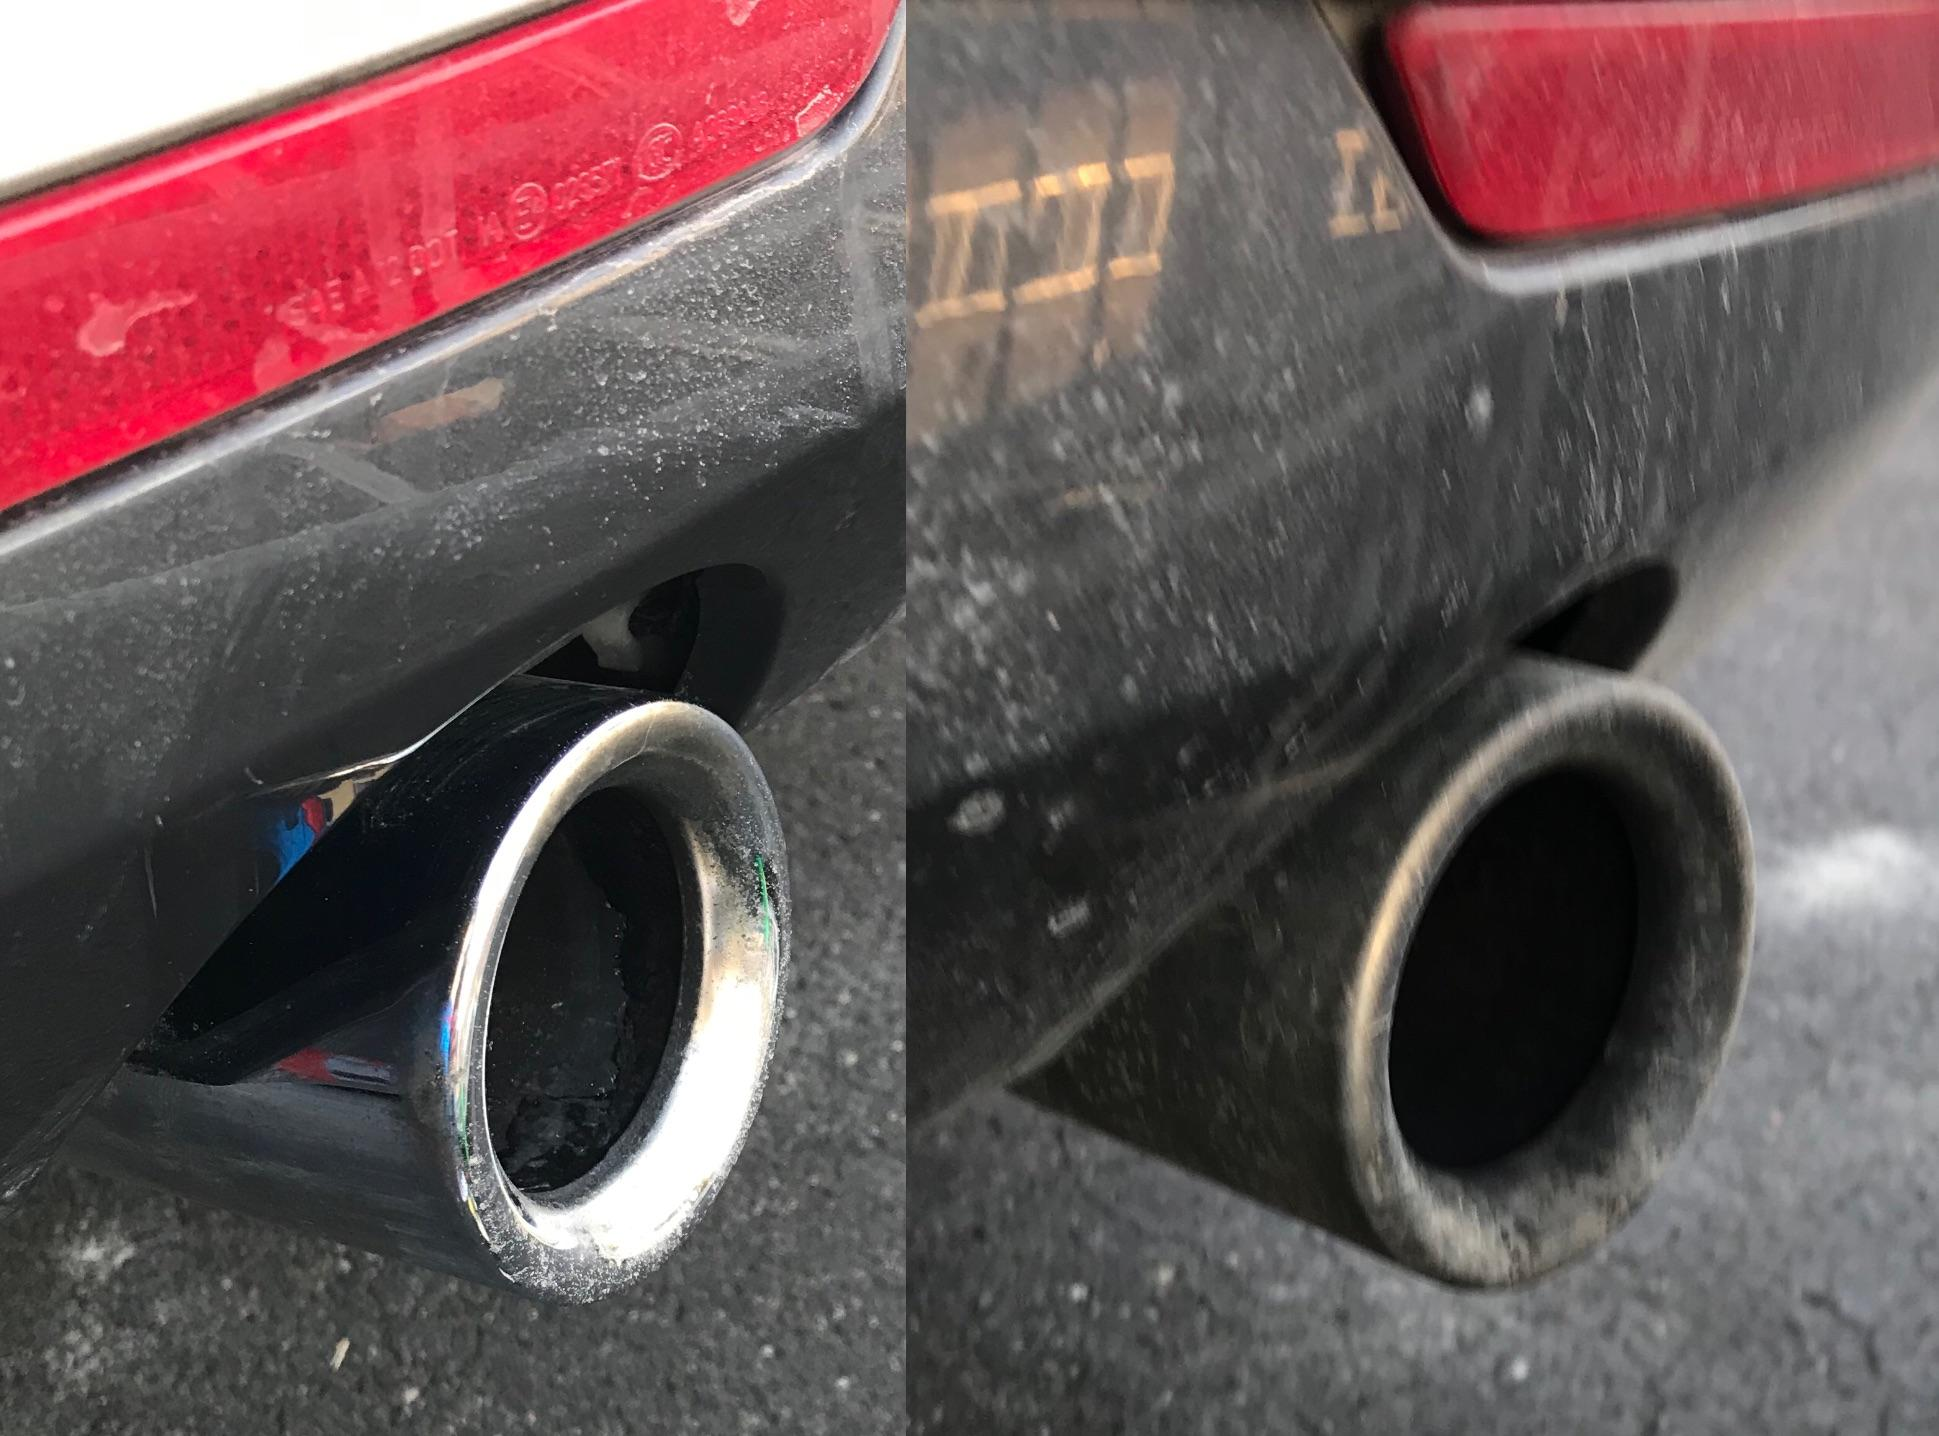 how do you guys clean your exhaust tips